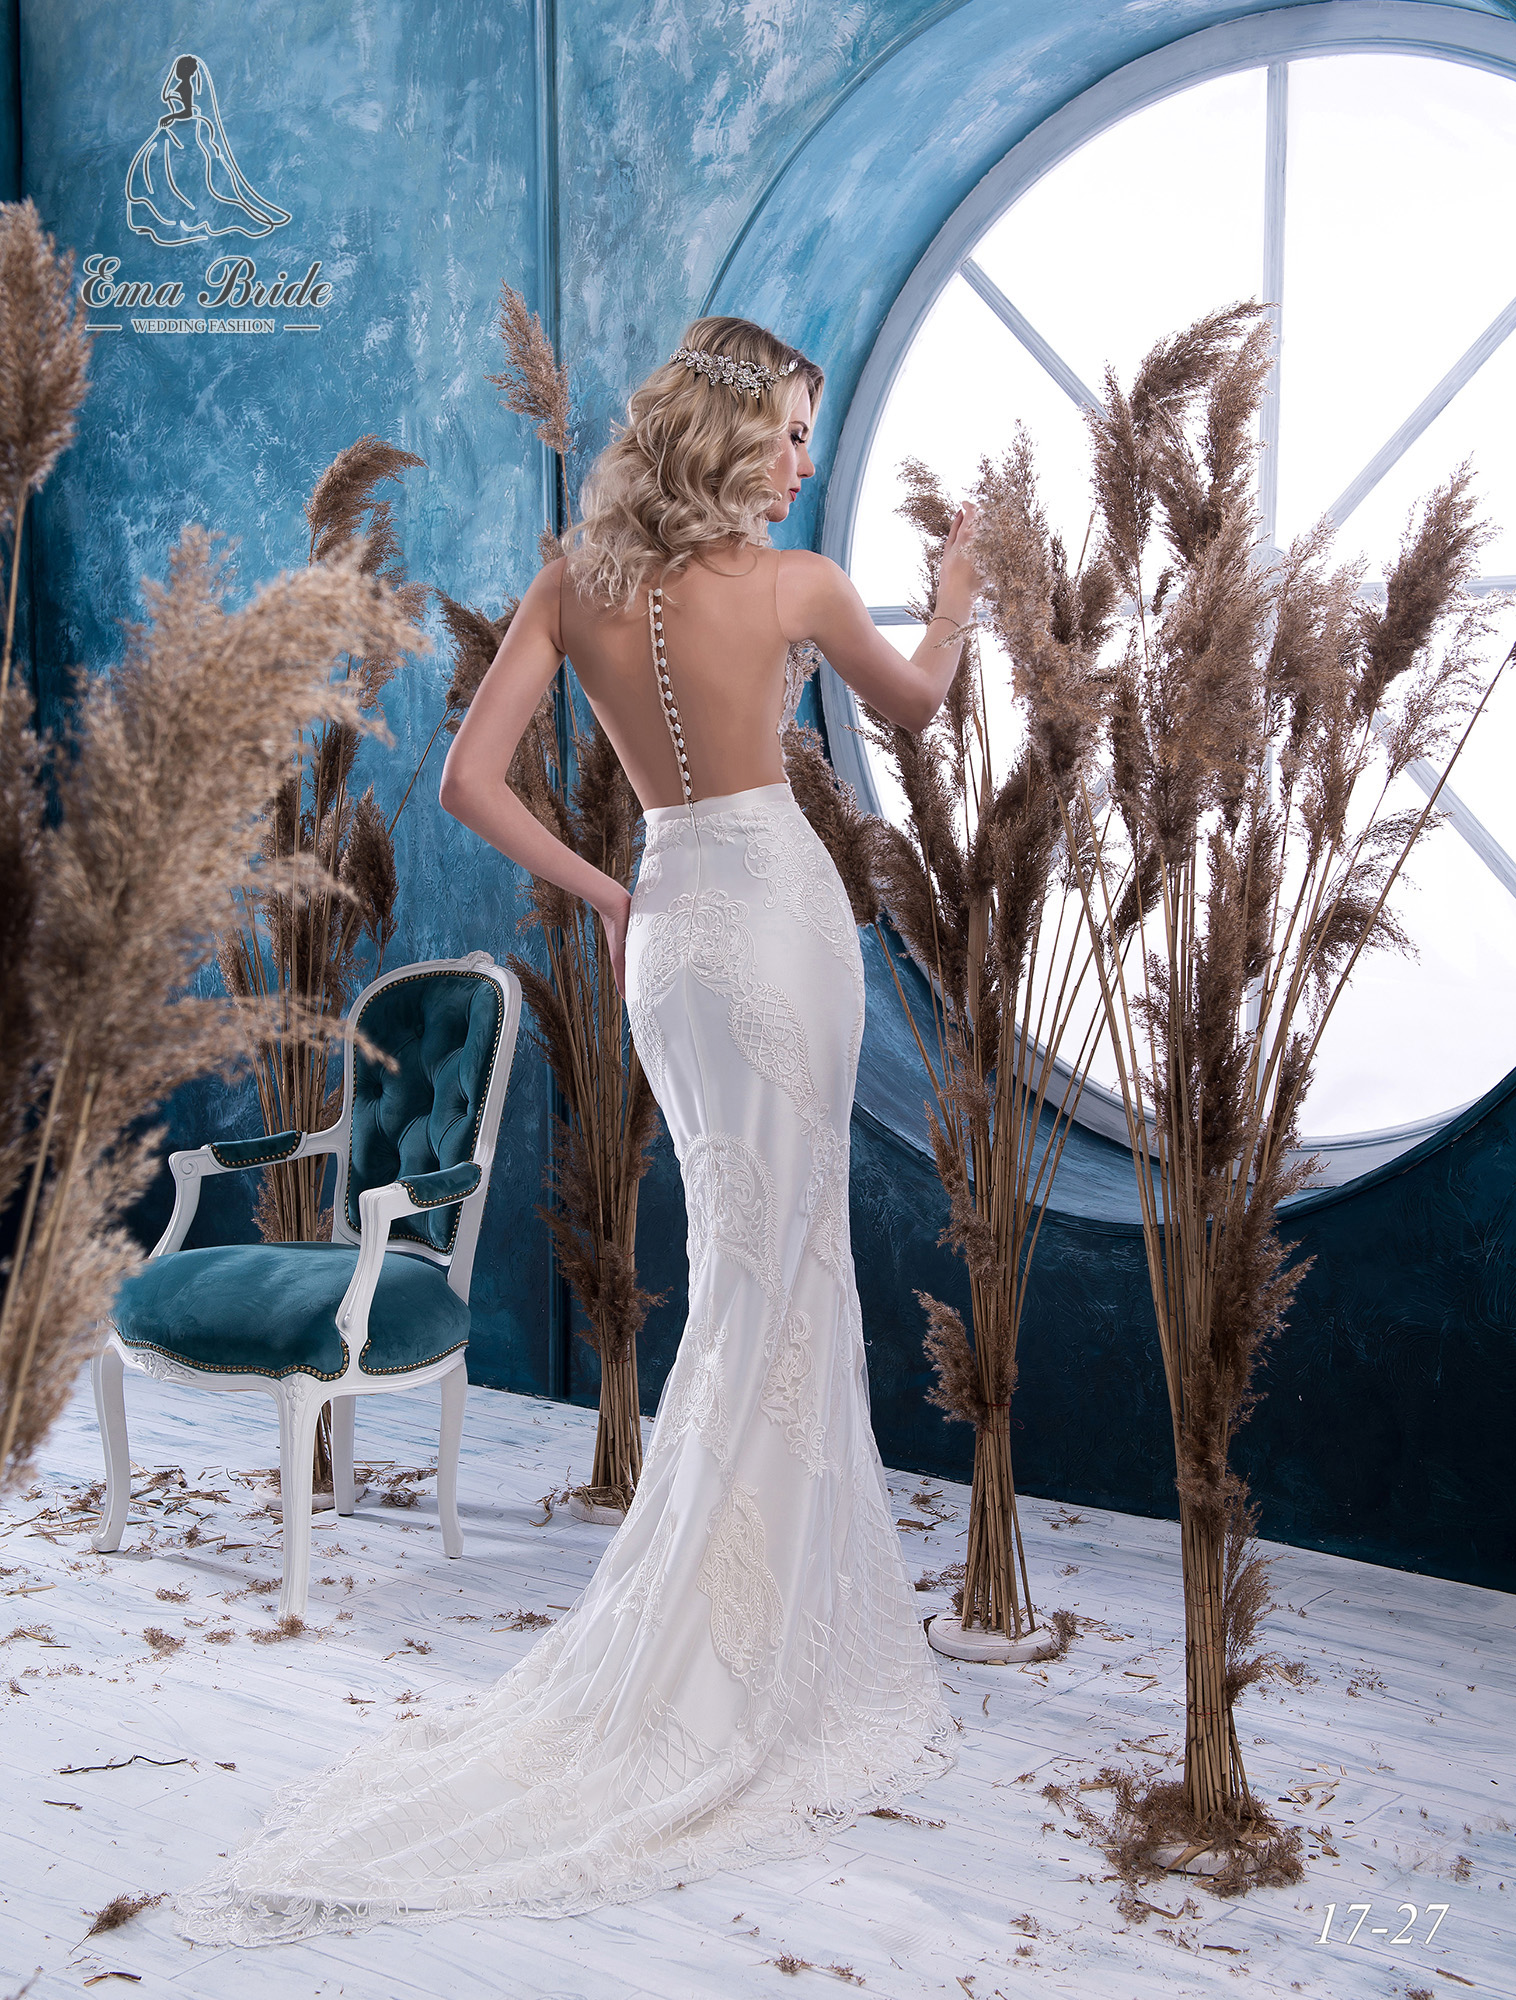 Fish silhouette wedding dress-2